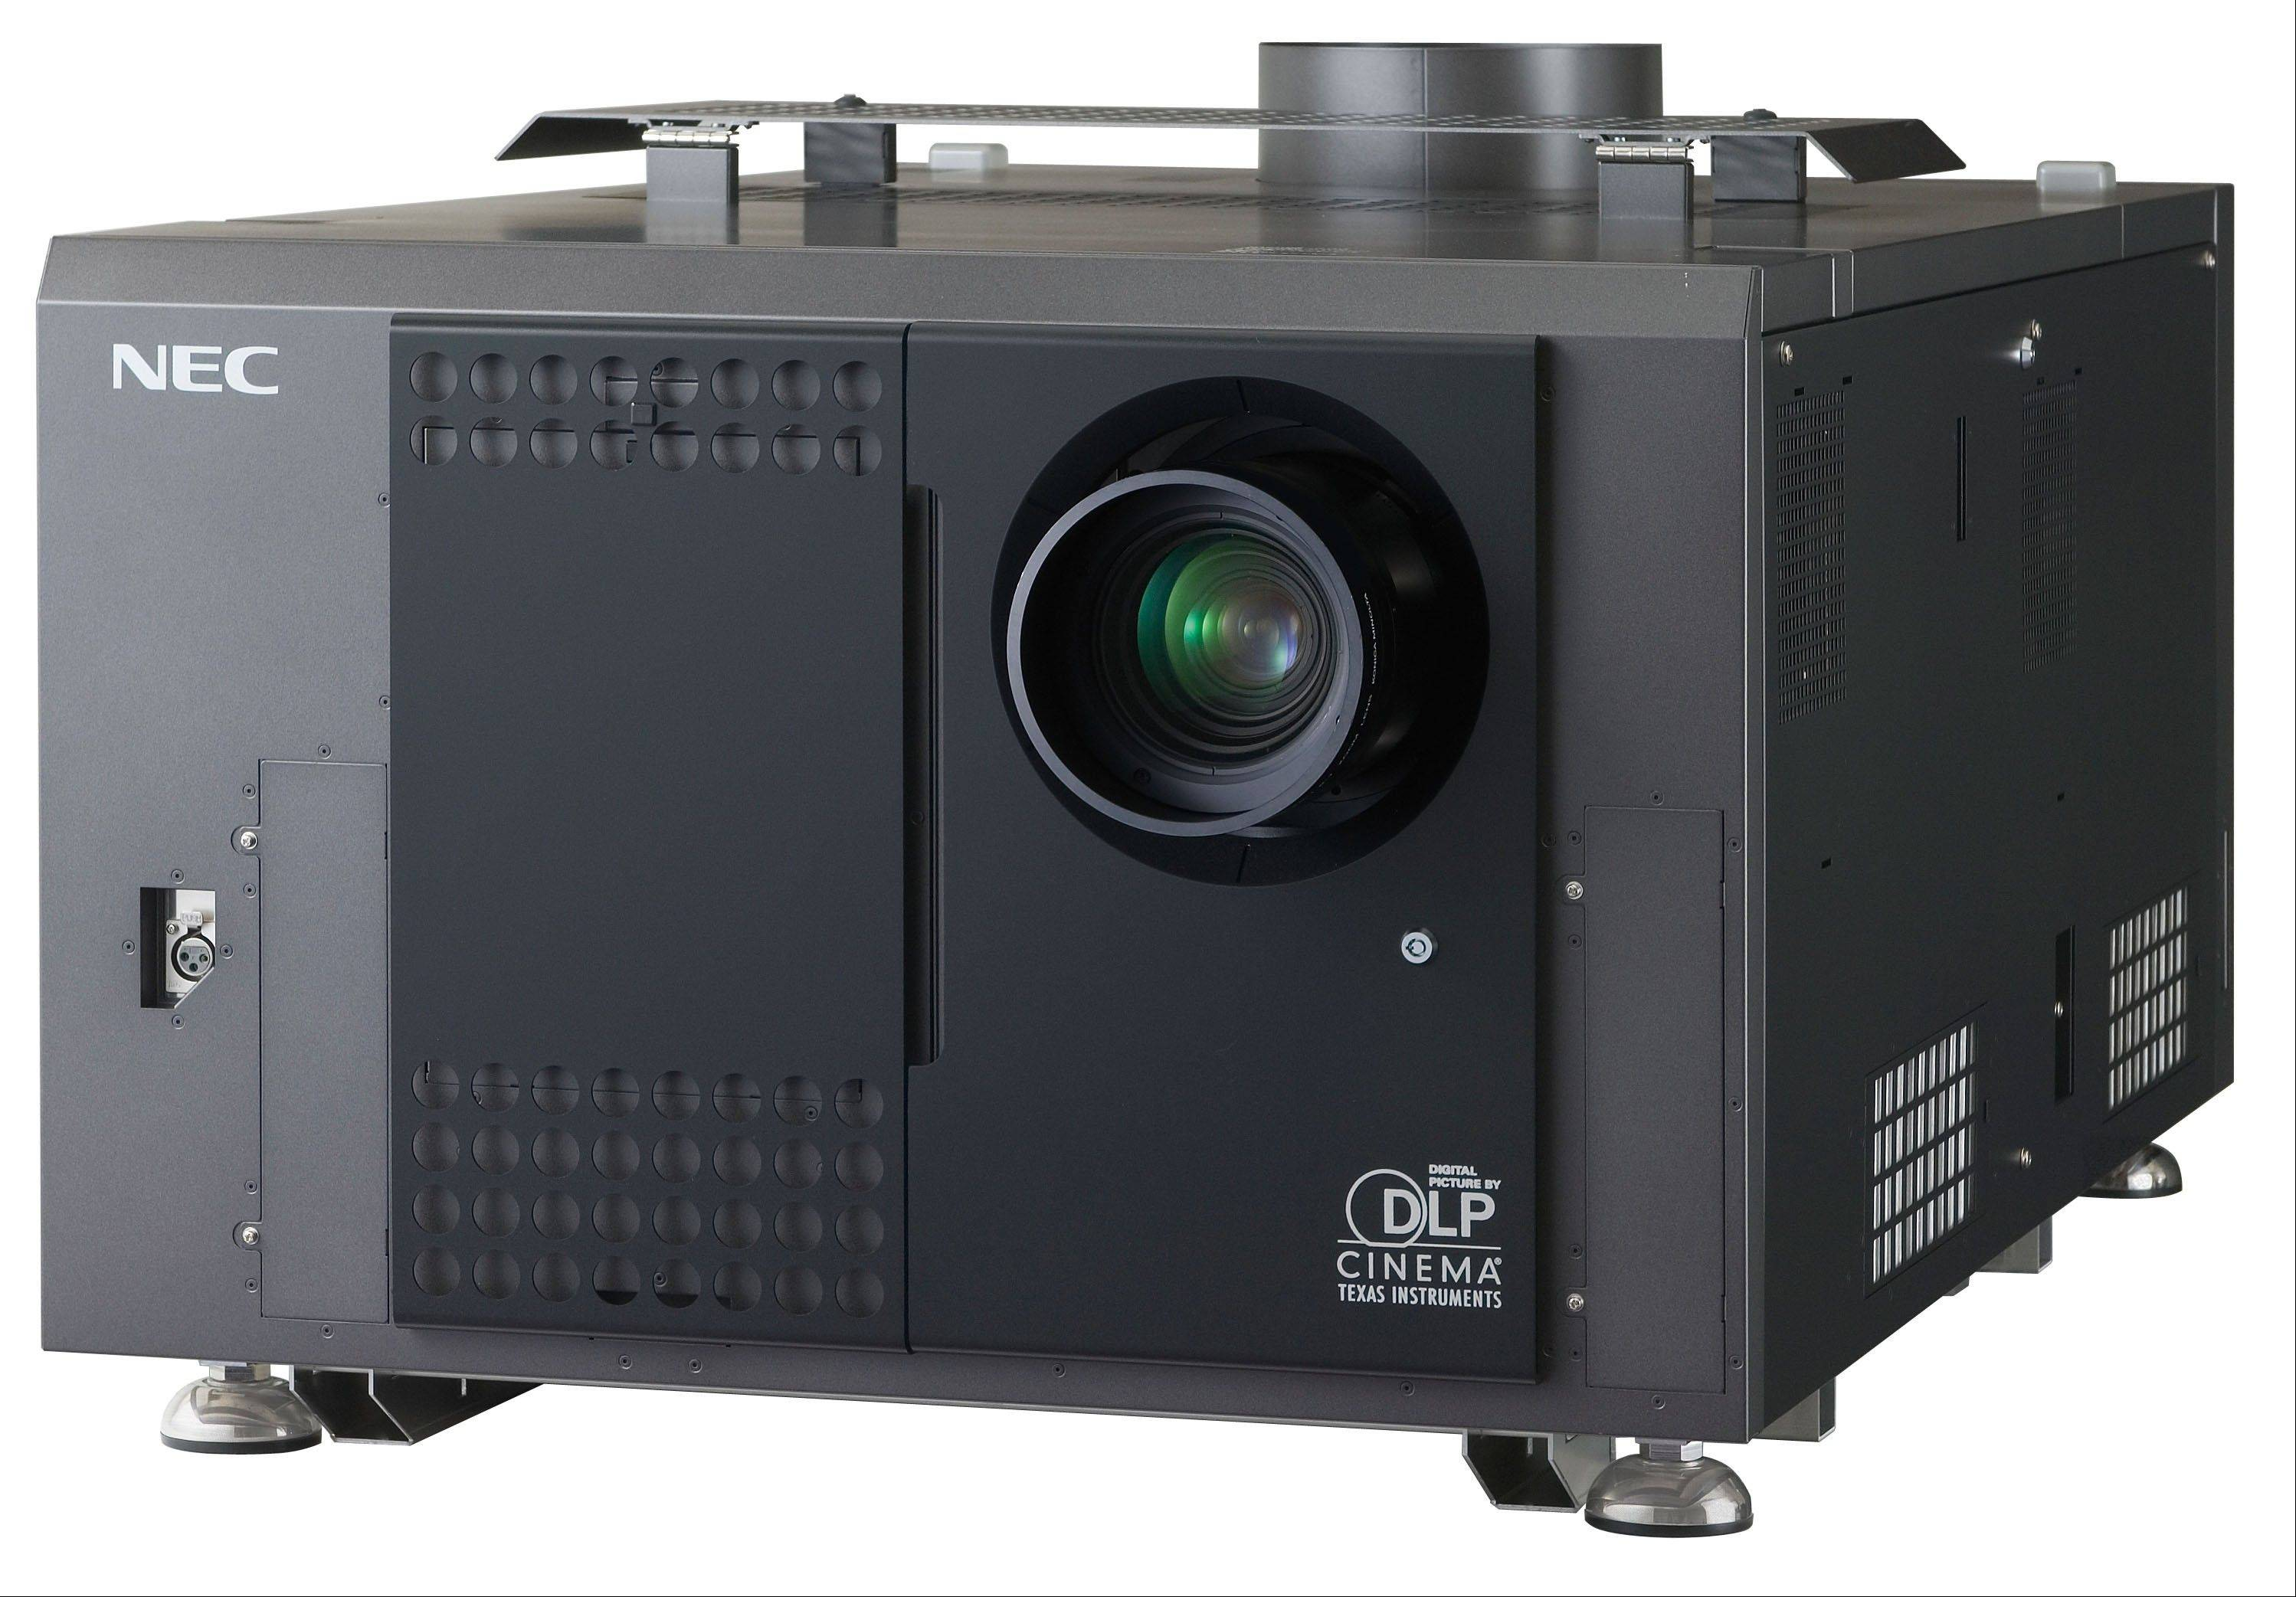 NEC in Itasca is one of four companies nationwide that makes digital projectors for movie theaters. Digital projectors, like NEC's NC3240S pictured here, can cost $50,000 to $75,000, which includes additional equipment and installation.